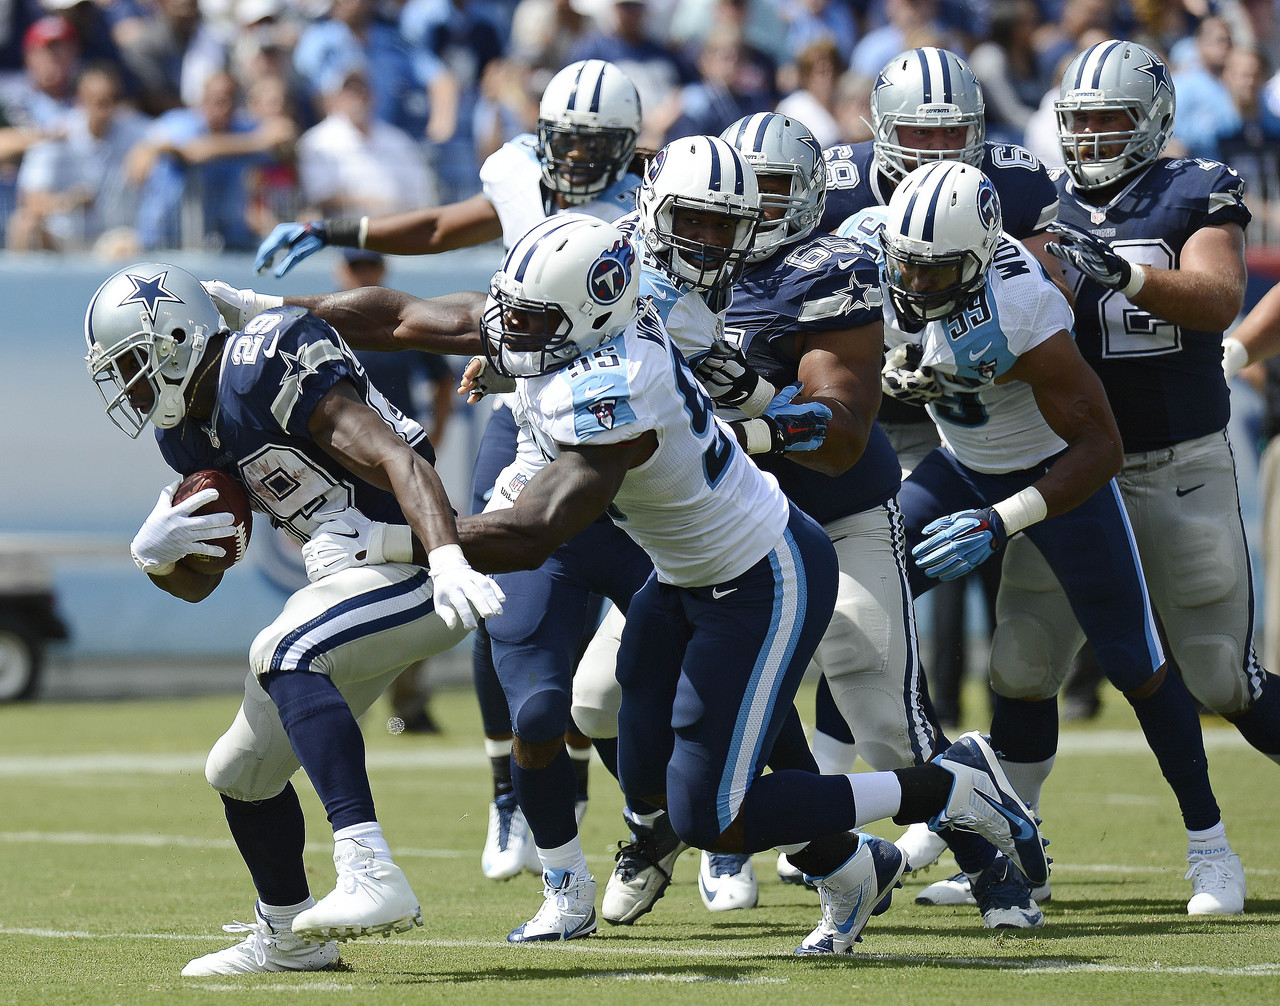 cowboys titans football demarco murray kamerion wimbley pg